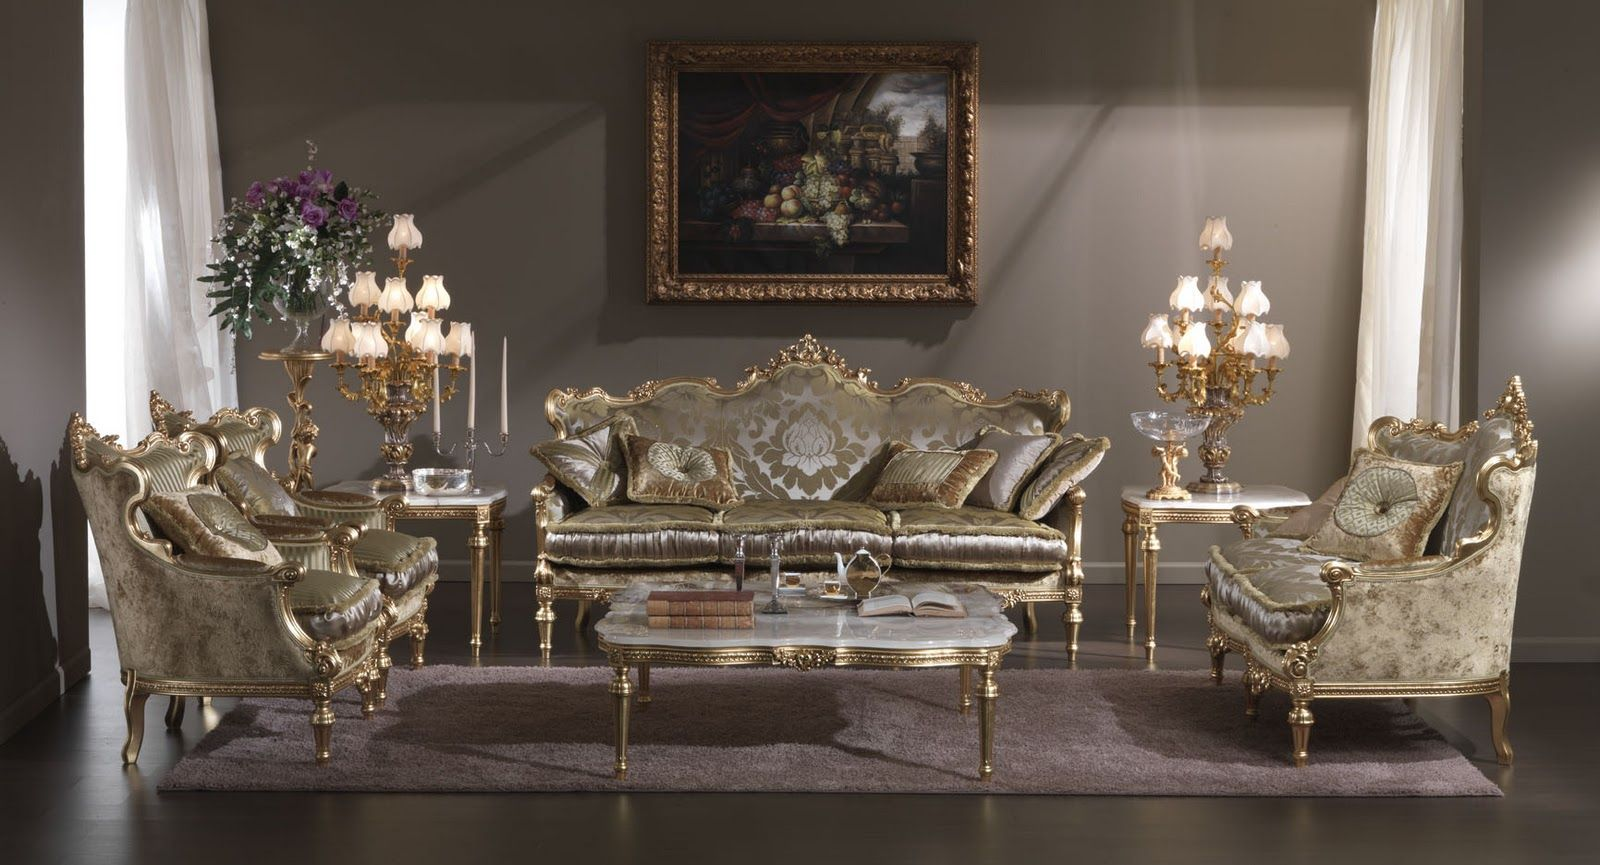 Ideas For Classic Furniture Italian Living Room Furniture Italian Classic Furnitur Antique Furniture Living Room Antique Living Rooms Classic Furniture #pictures #living #room #furniture